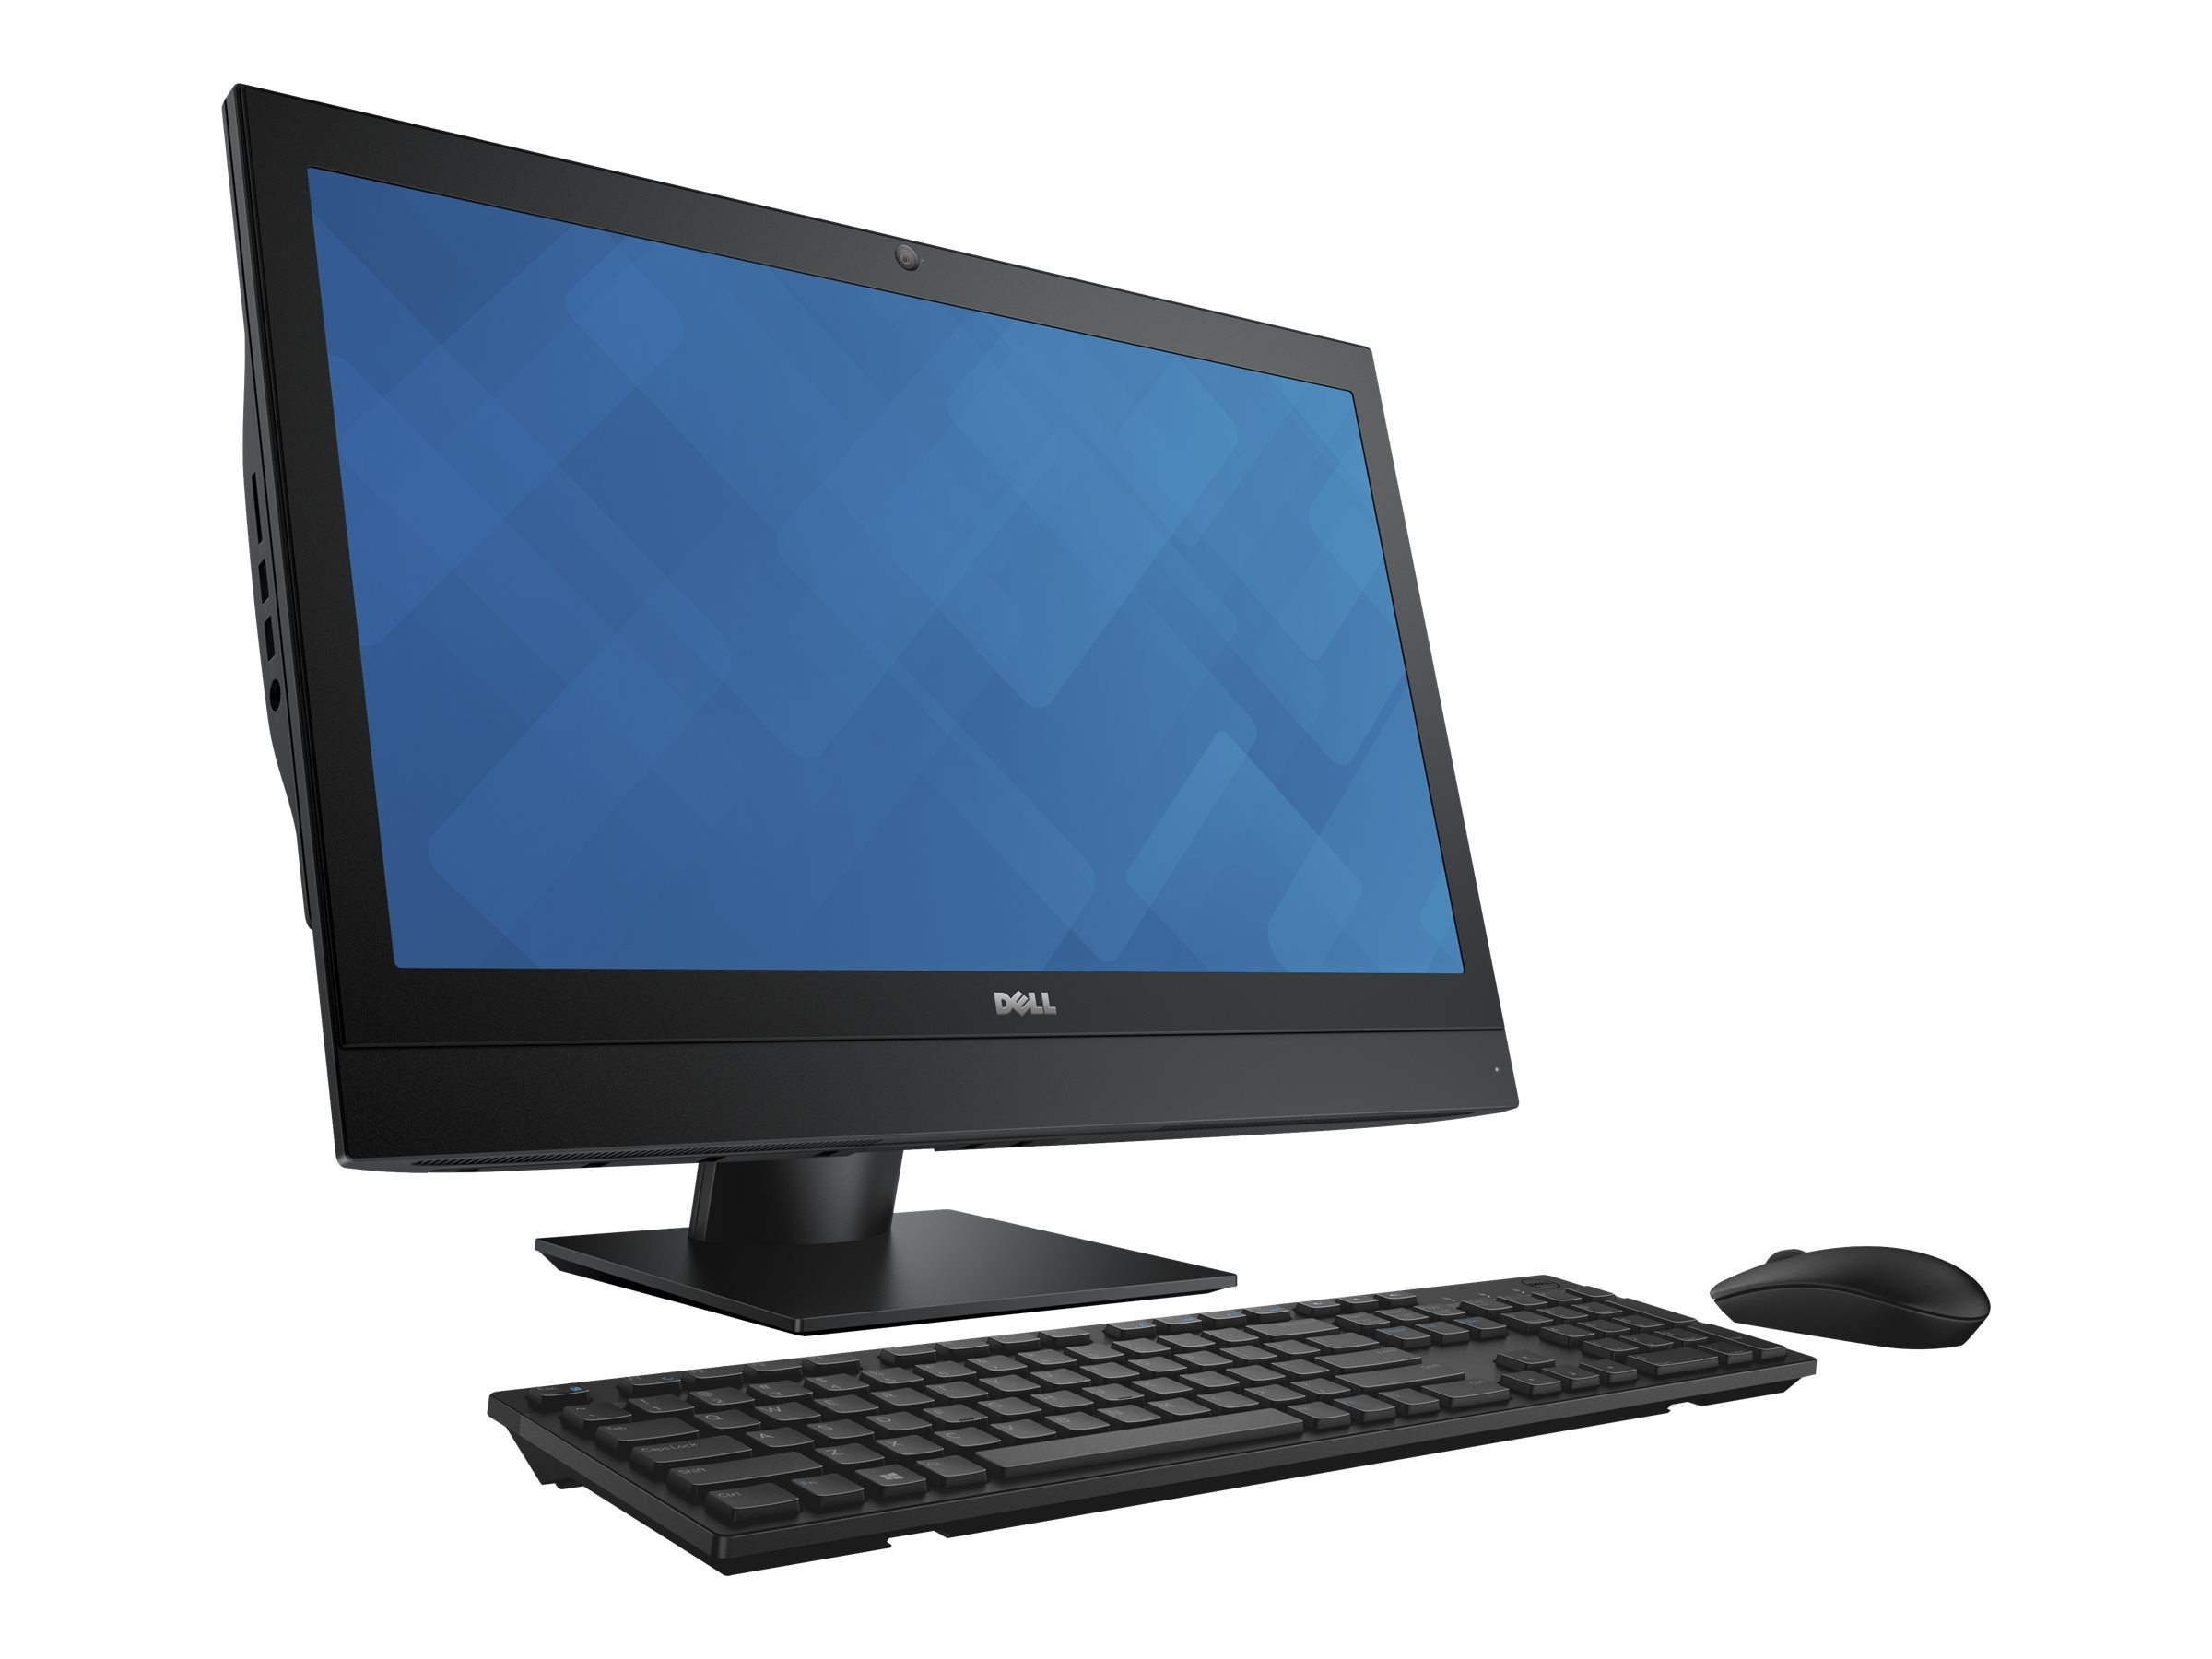 Dell OptiPlex 7440 AIO Core i5-6500 3.2GHz 8GB 500GB DVD+RW ac BT WC 23 FHD MT W8.1P64-W10P, F6NVC